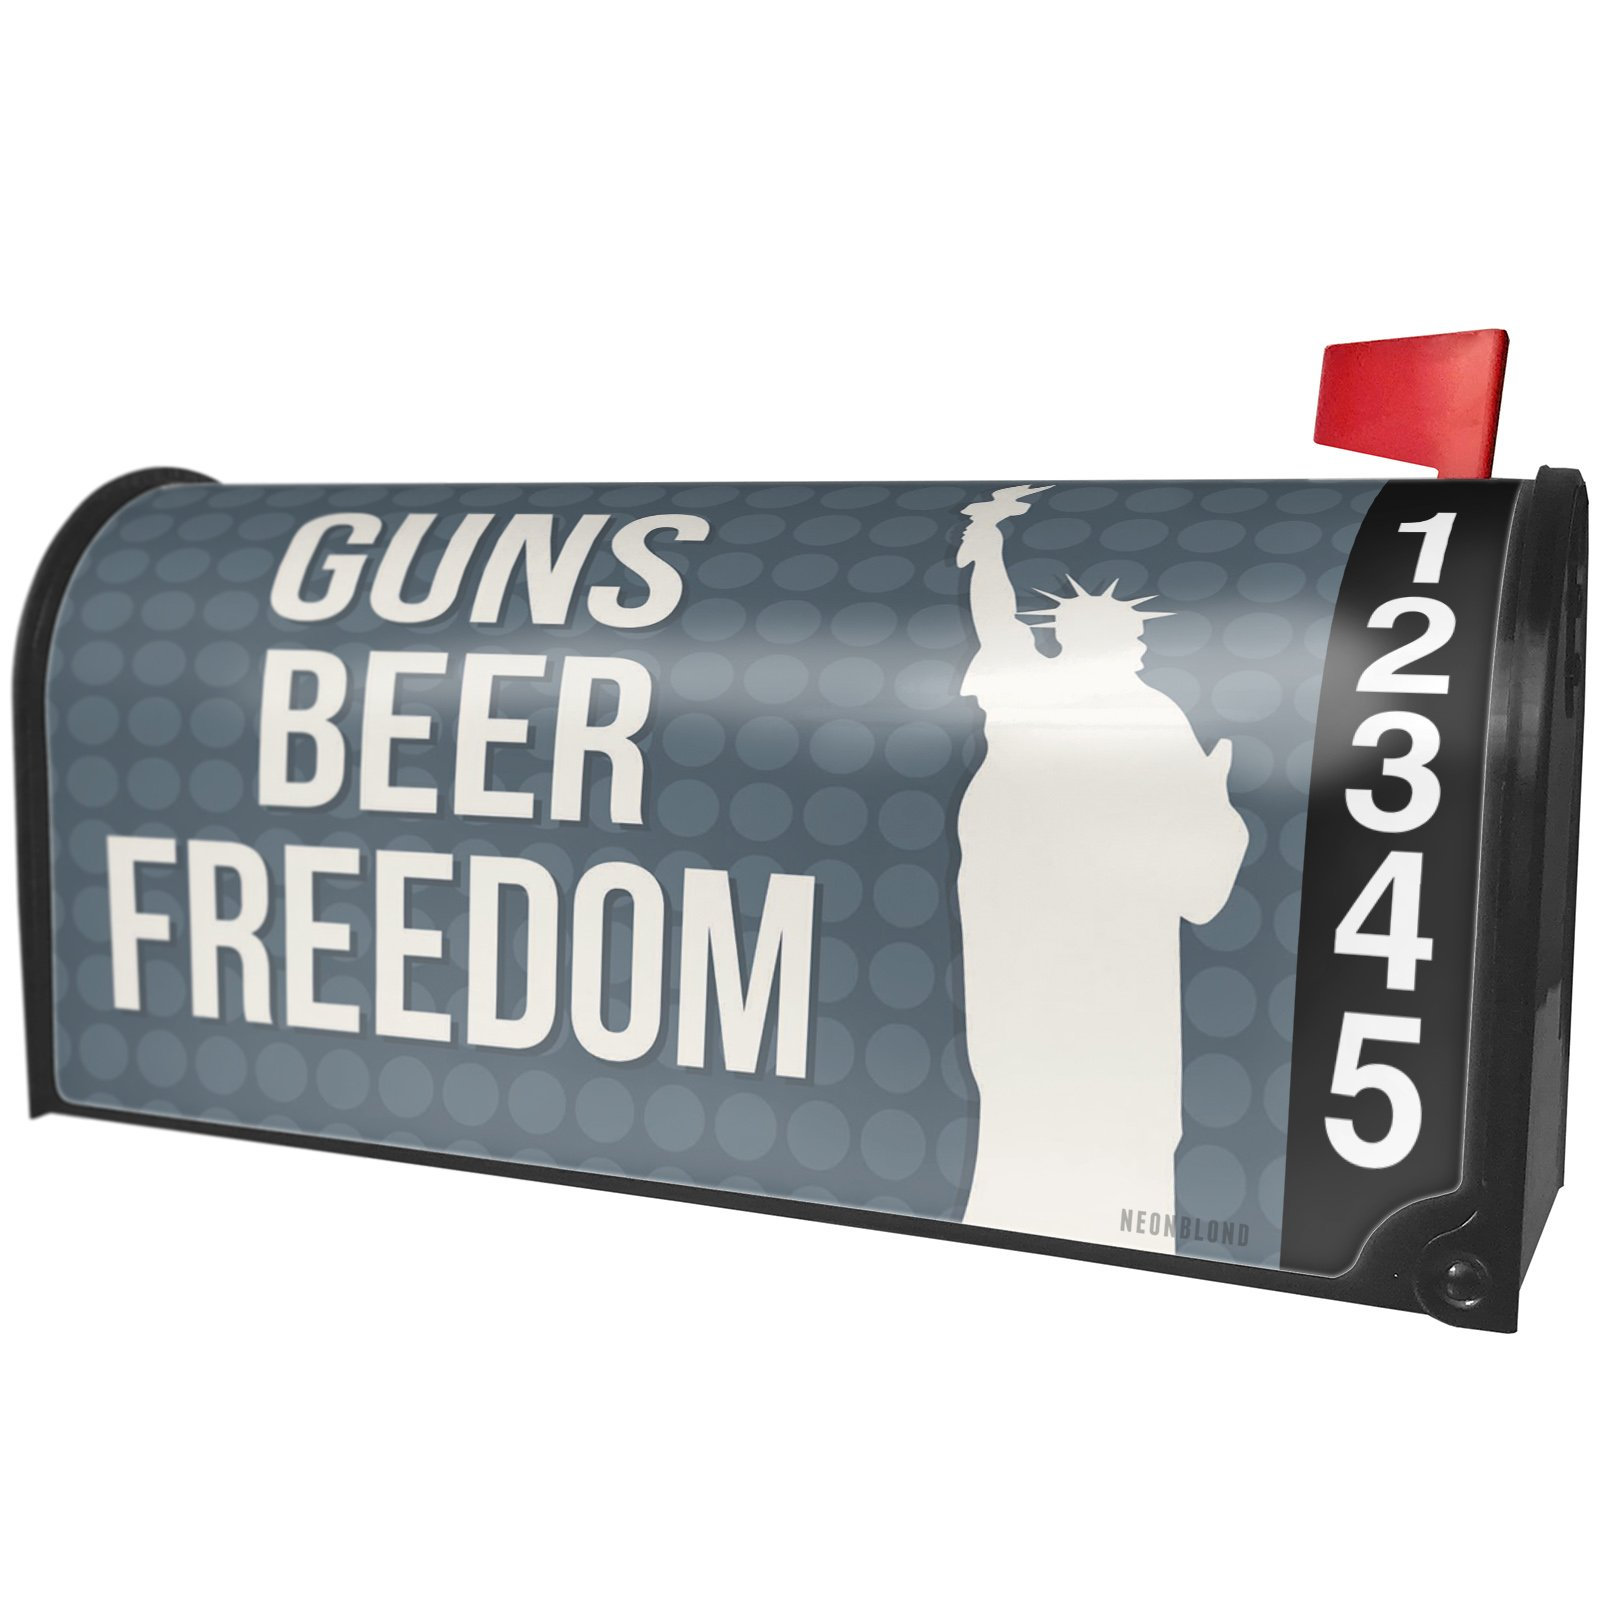 NEONBLOND Guns Beer Freedom Fourth of July Lady Liberty Magnetic Mailbox Cover Custom Numbers